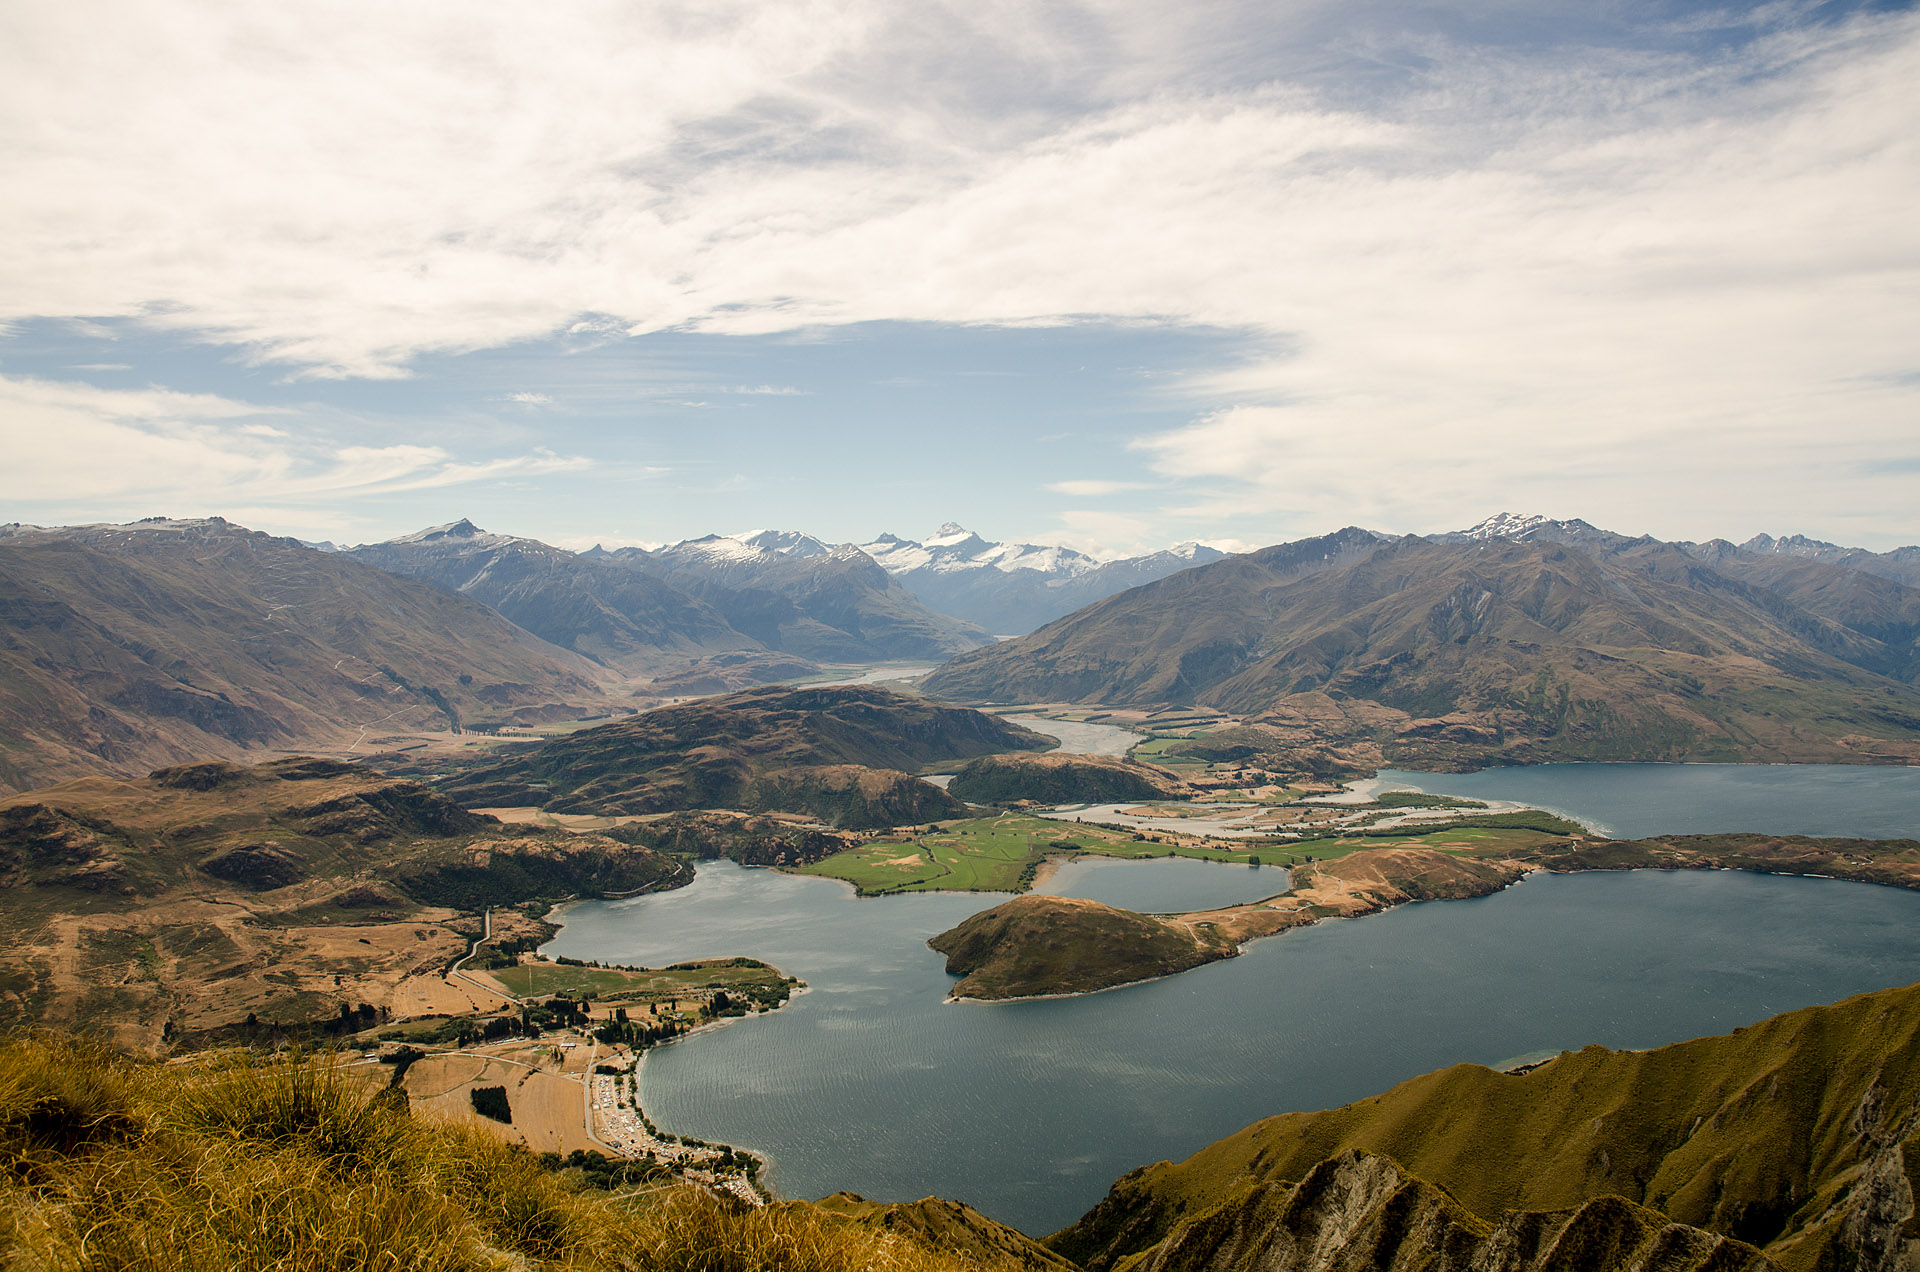 Mt. Aspiring, Lake Wanaka from Roy's Peak summit (5,177')